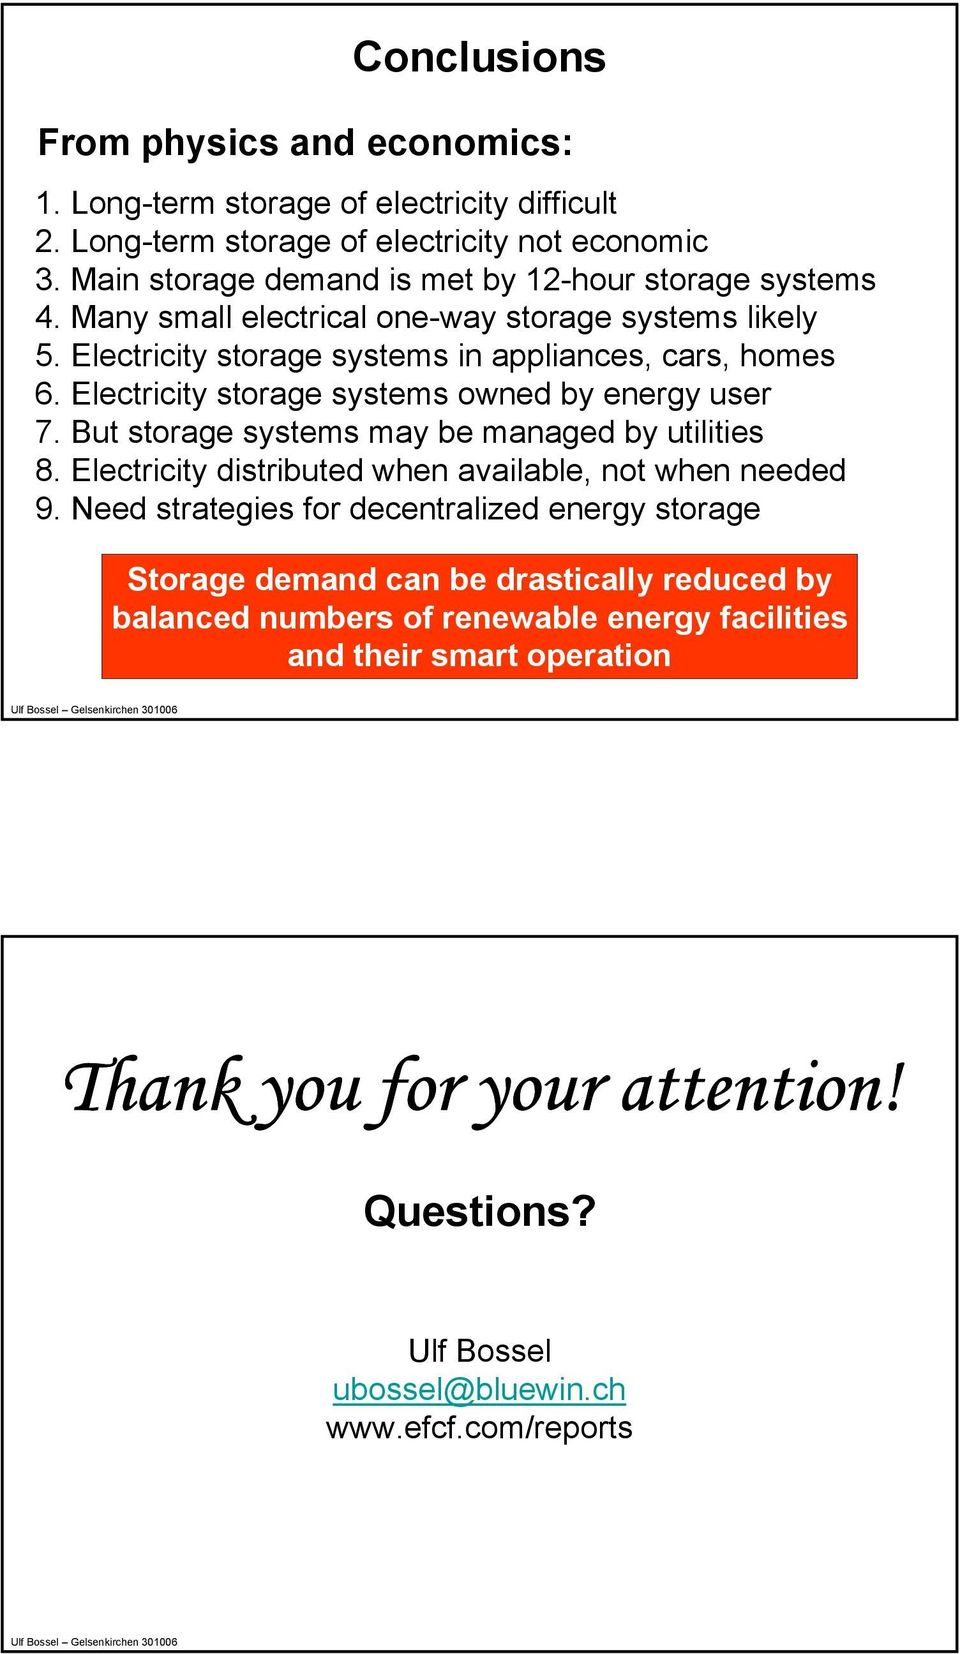 Electricity storage systems owned by energy user 7. But storage systems may be managed by utilities 8. Electricity distributed when available, not when needed 9.